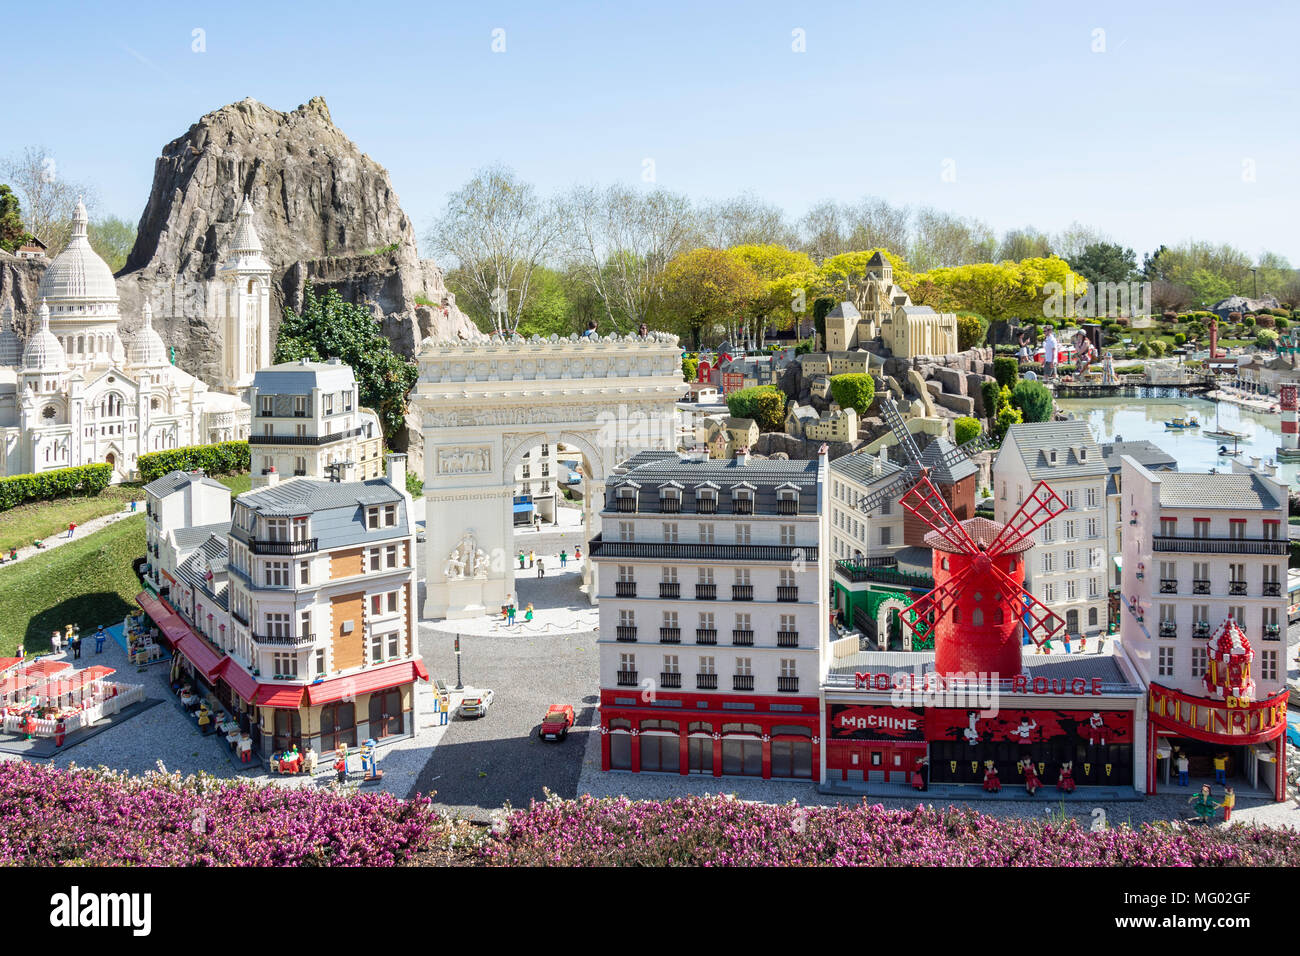 Paris sights at Miniland France, Legoland Windsor Resort, Windsor, Berkshire, England, United Kingdom - Stock Image